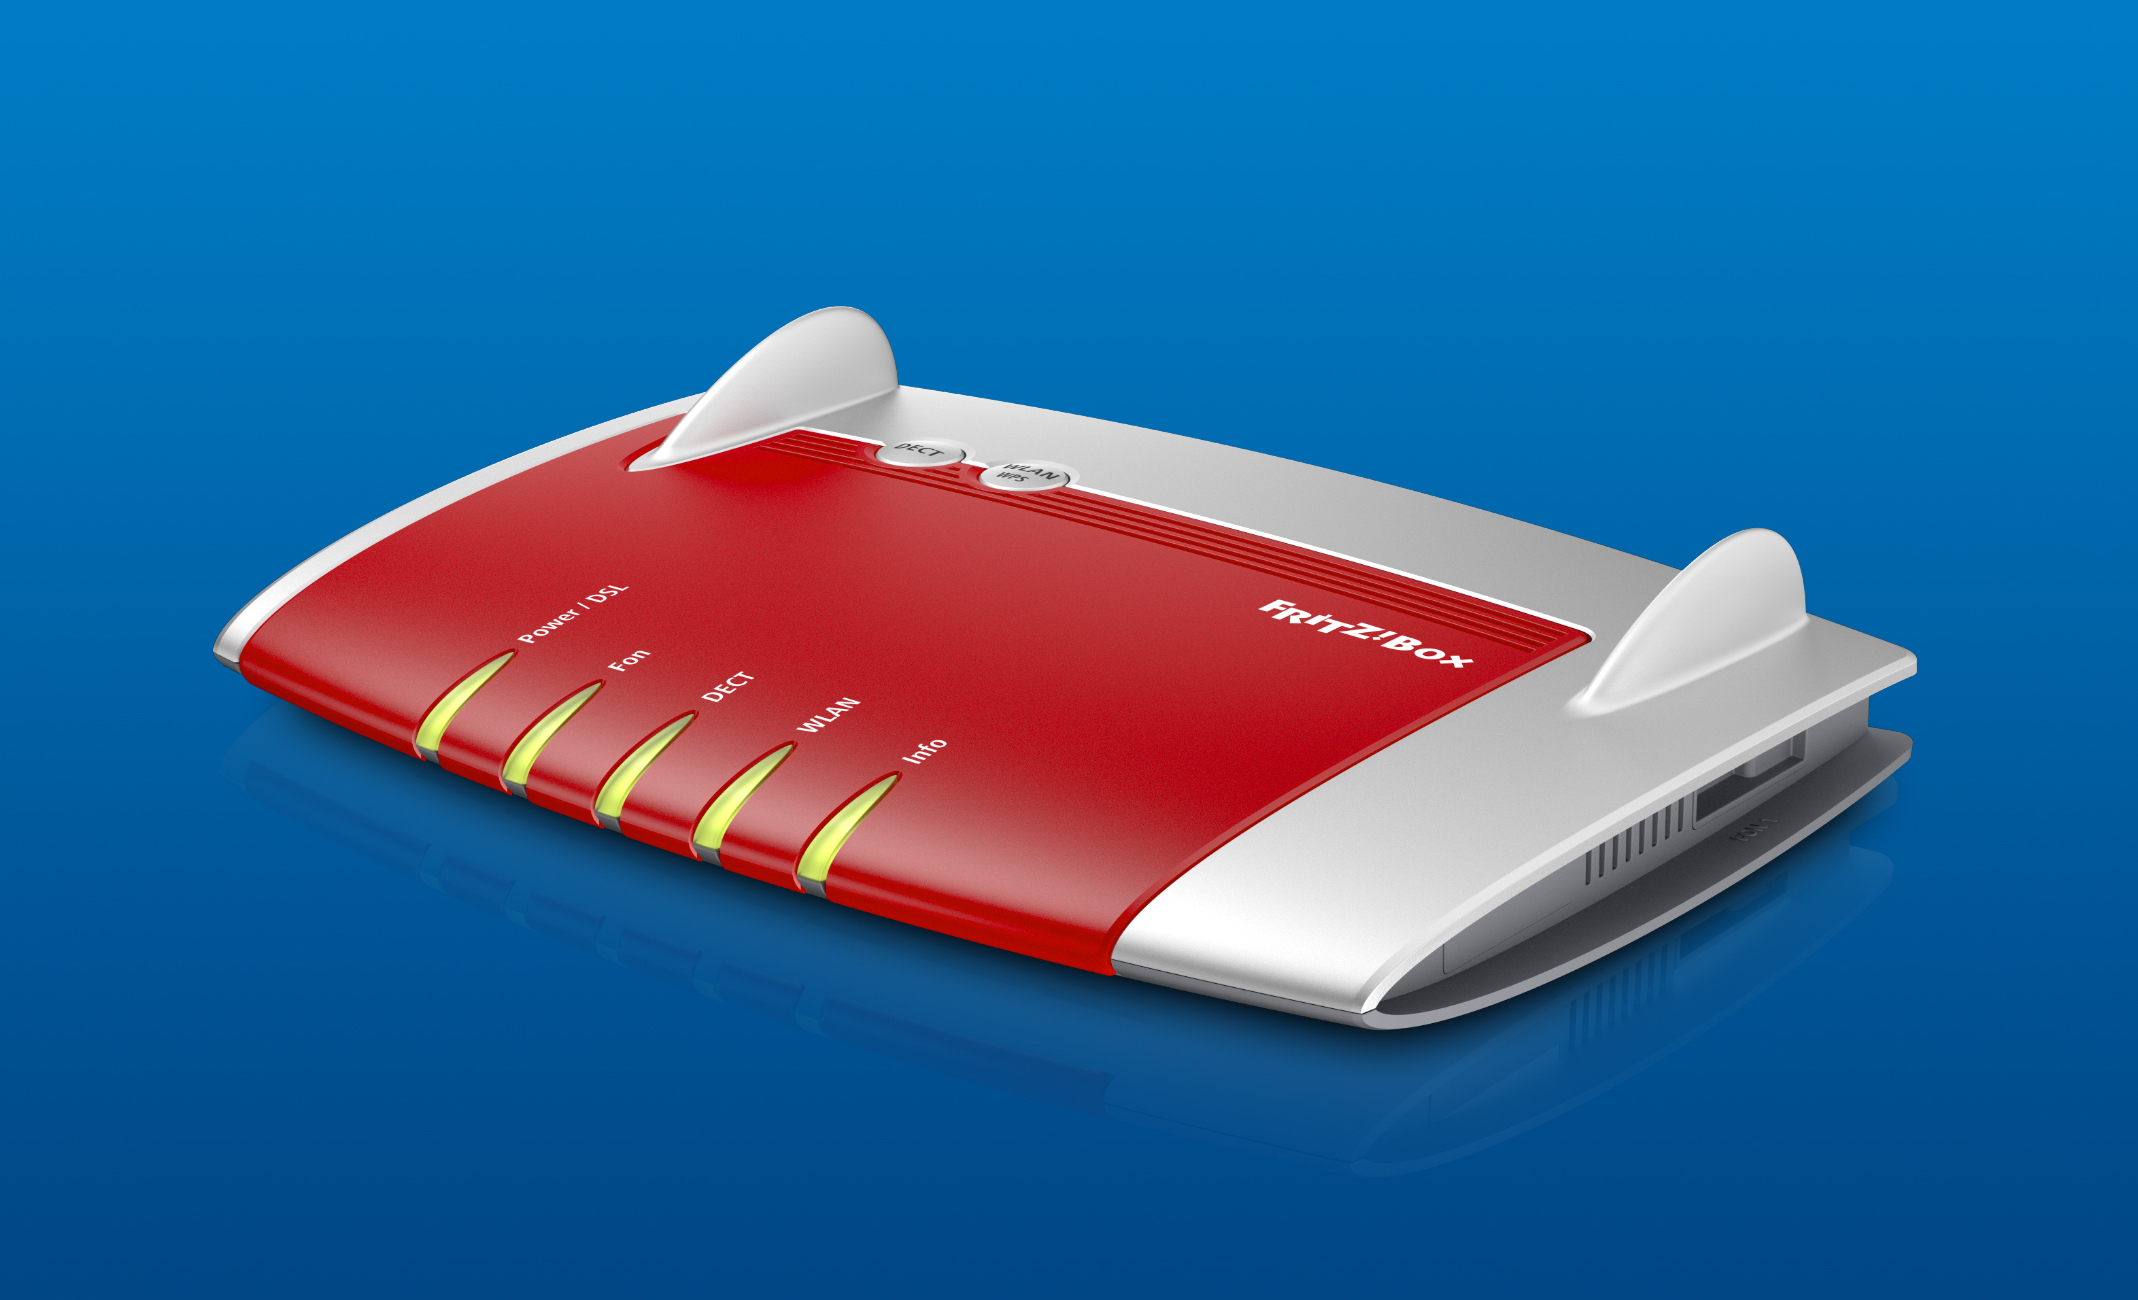 Router per Internet: FRITZ!Box 7430 l'ultra veloce